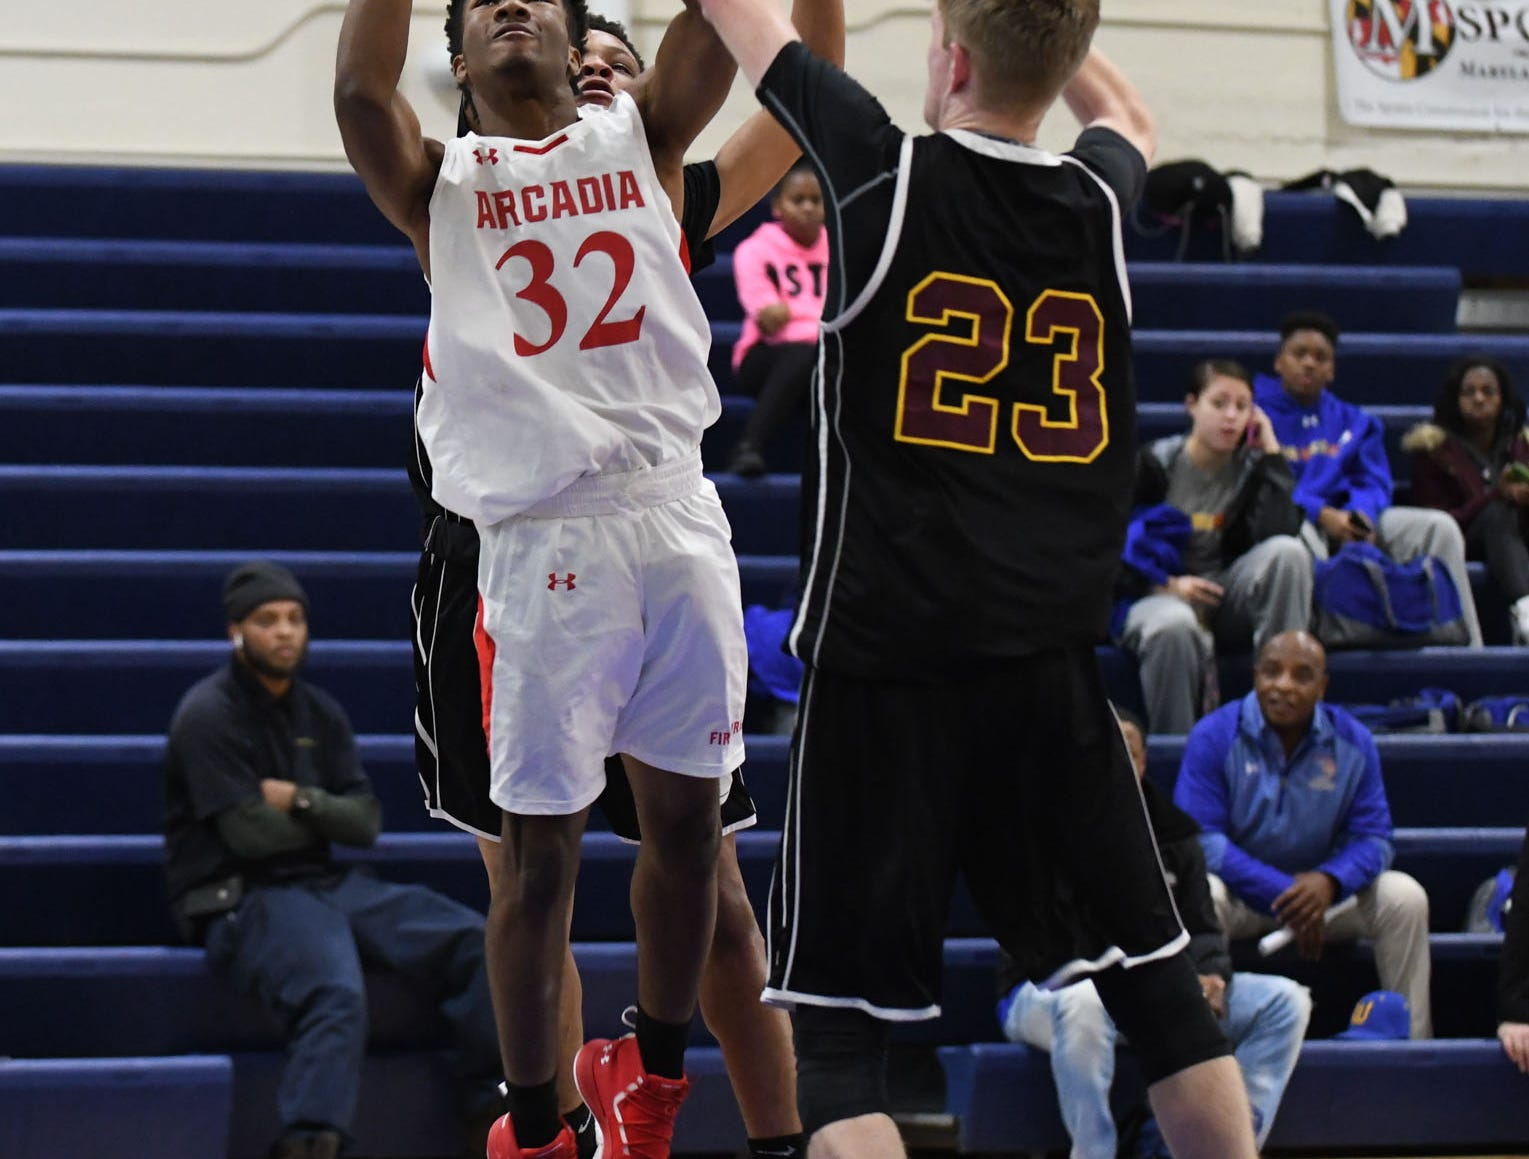 Arcadia's Tevin Bunting with the jumper against Washington High School on Wednesday, Dec. 26, 2018 during the Governors Challenge in Salisbury, Md.